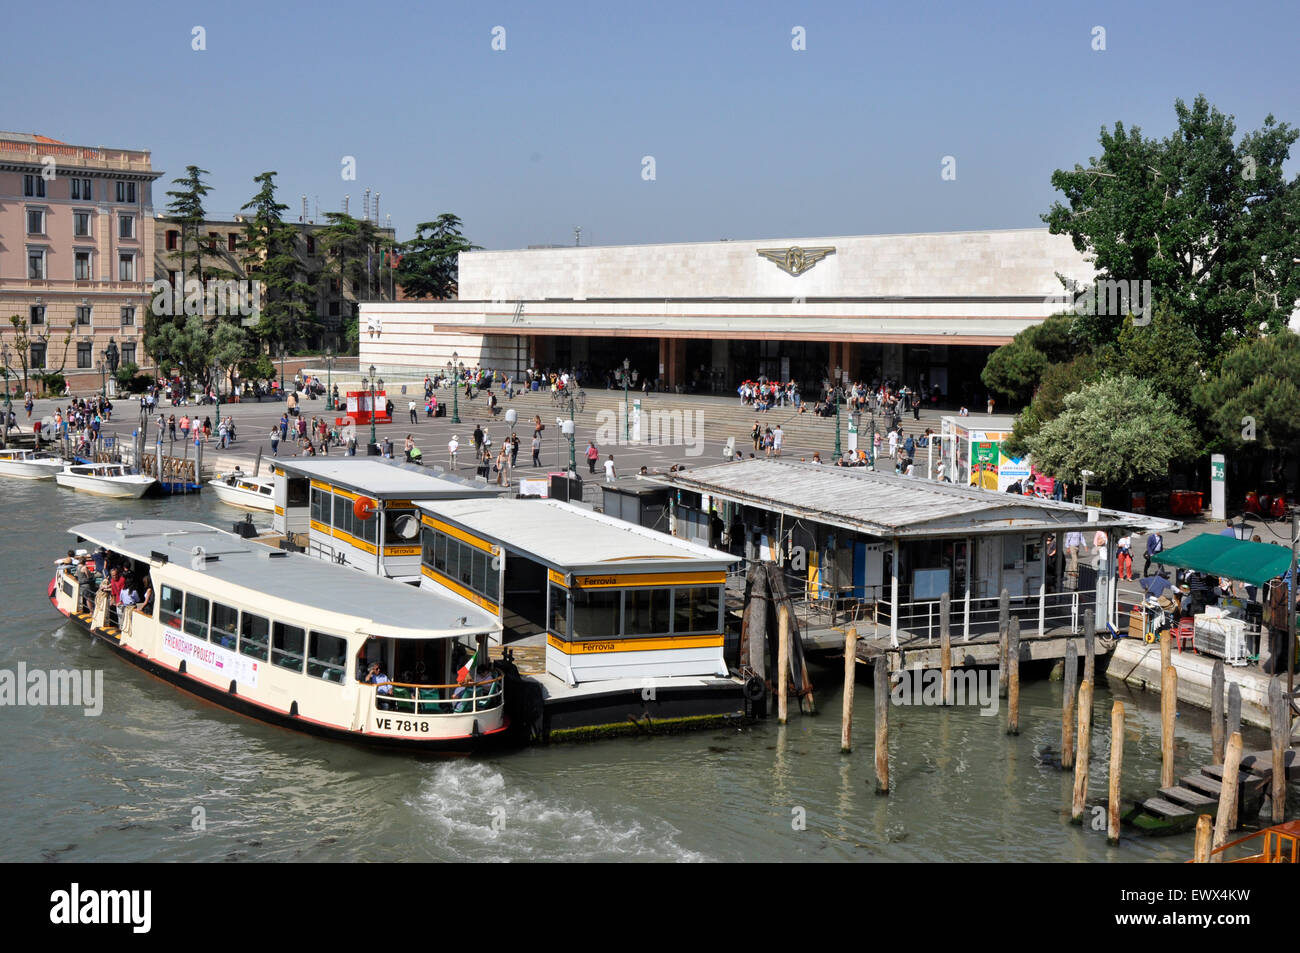 Italy - Venice Canale Grande - Cannaregio region - Ferrovia/Santa Lucia - the railway station and water bus stop. - Stock Image